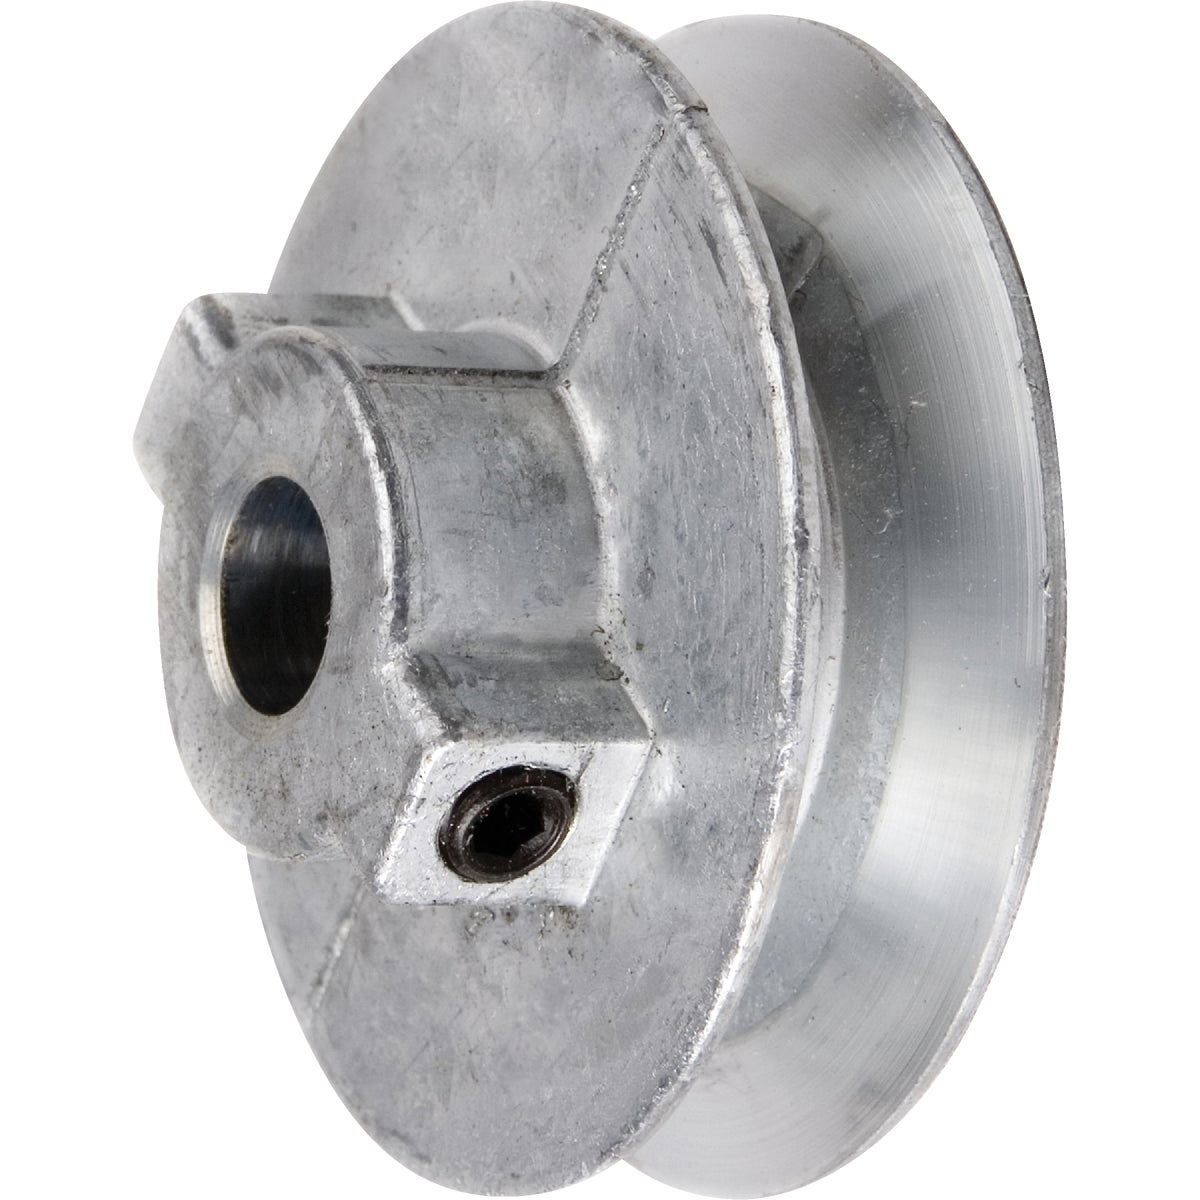 2-1/2X5/8 PULLEY - 250A6 by Chicago Die Casting